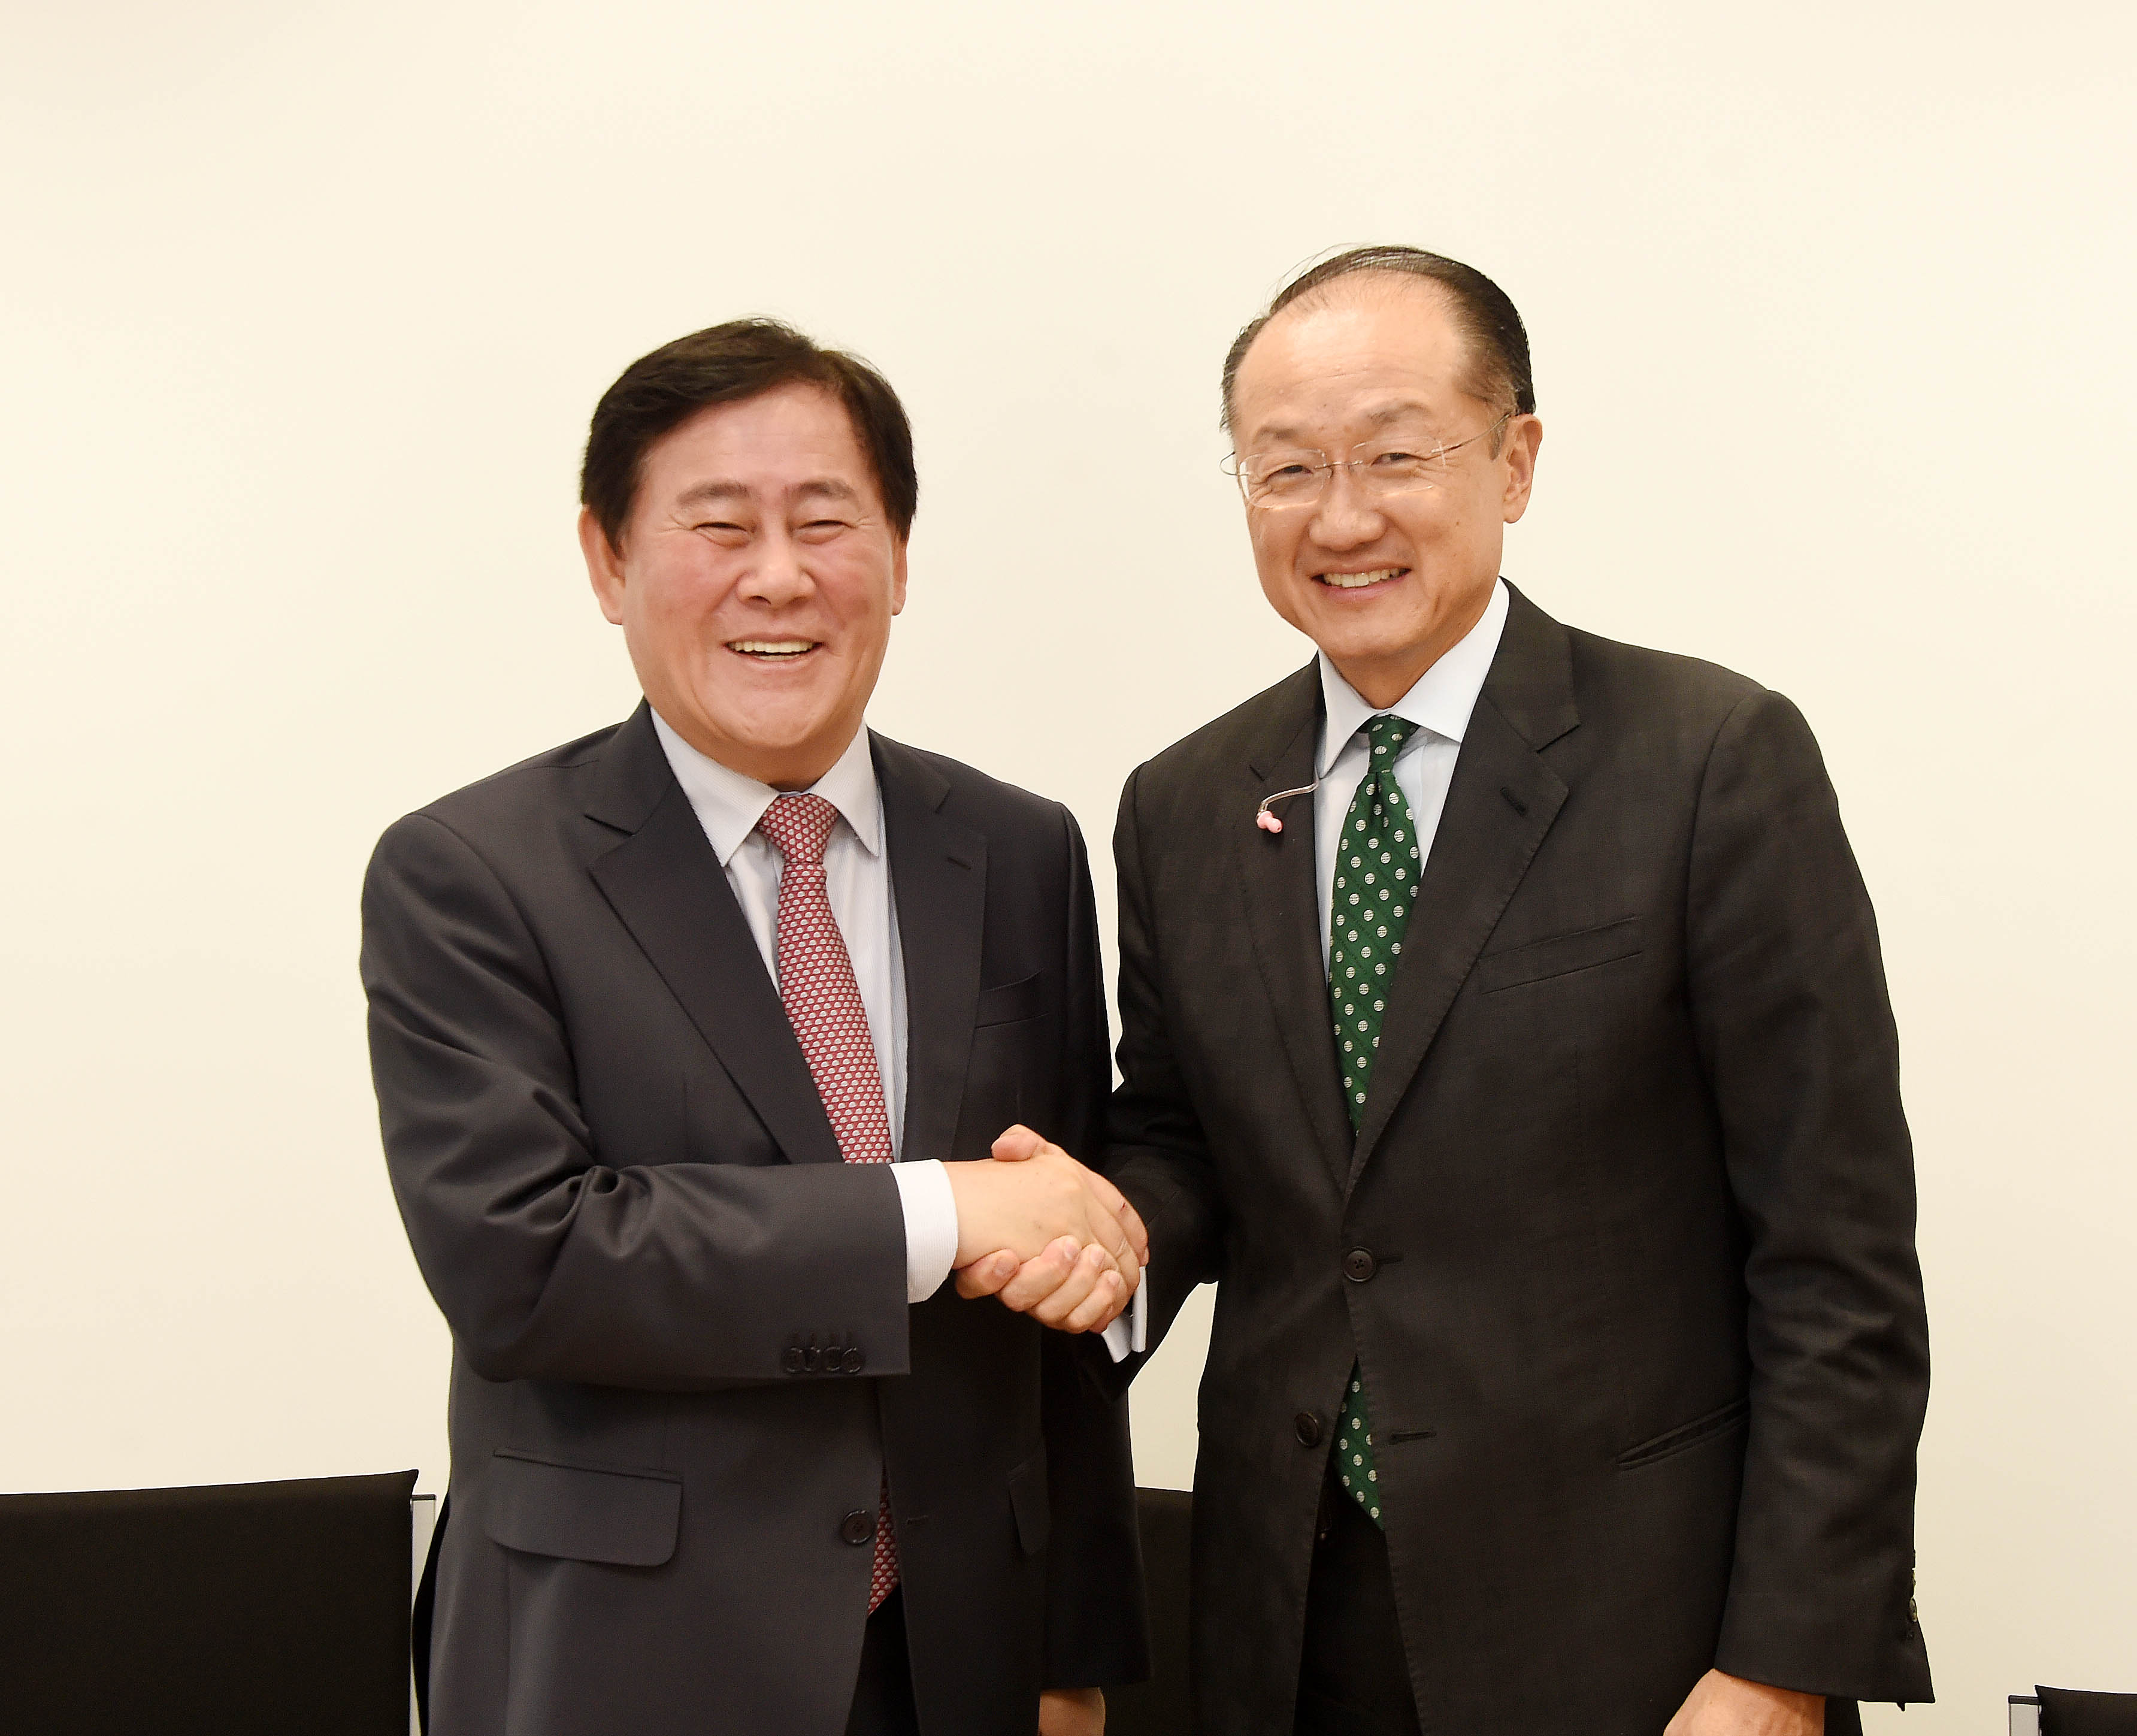 Deputy Prime Minister Choi meets with World Bank President Jim Yong Kim at the IMF/World Bank Annual Meetings in Lima, Peru